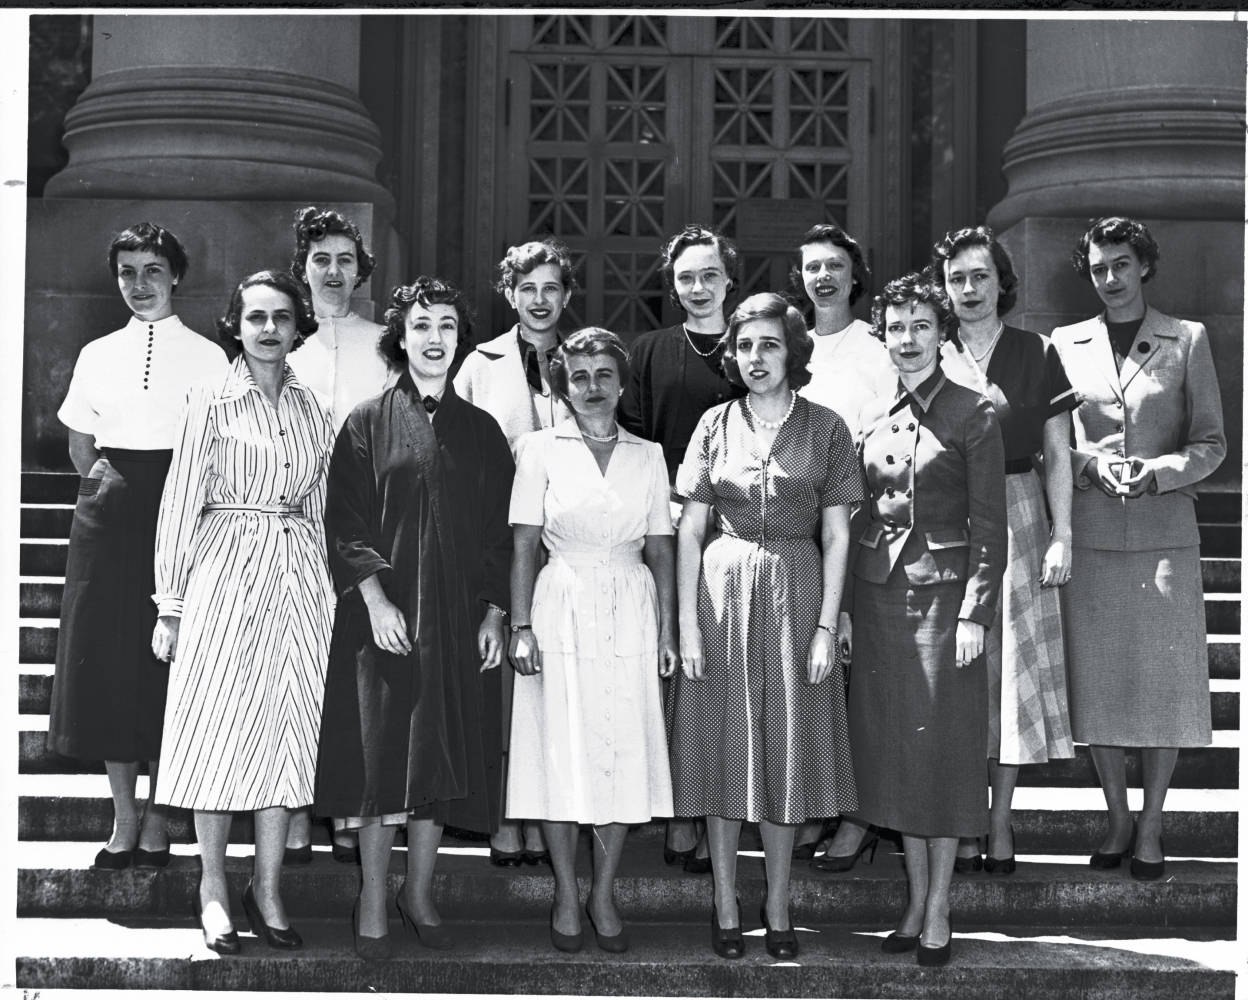 Photograph of the first class of woman at HLS outside Langdell